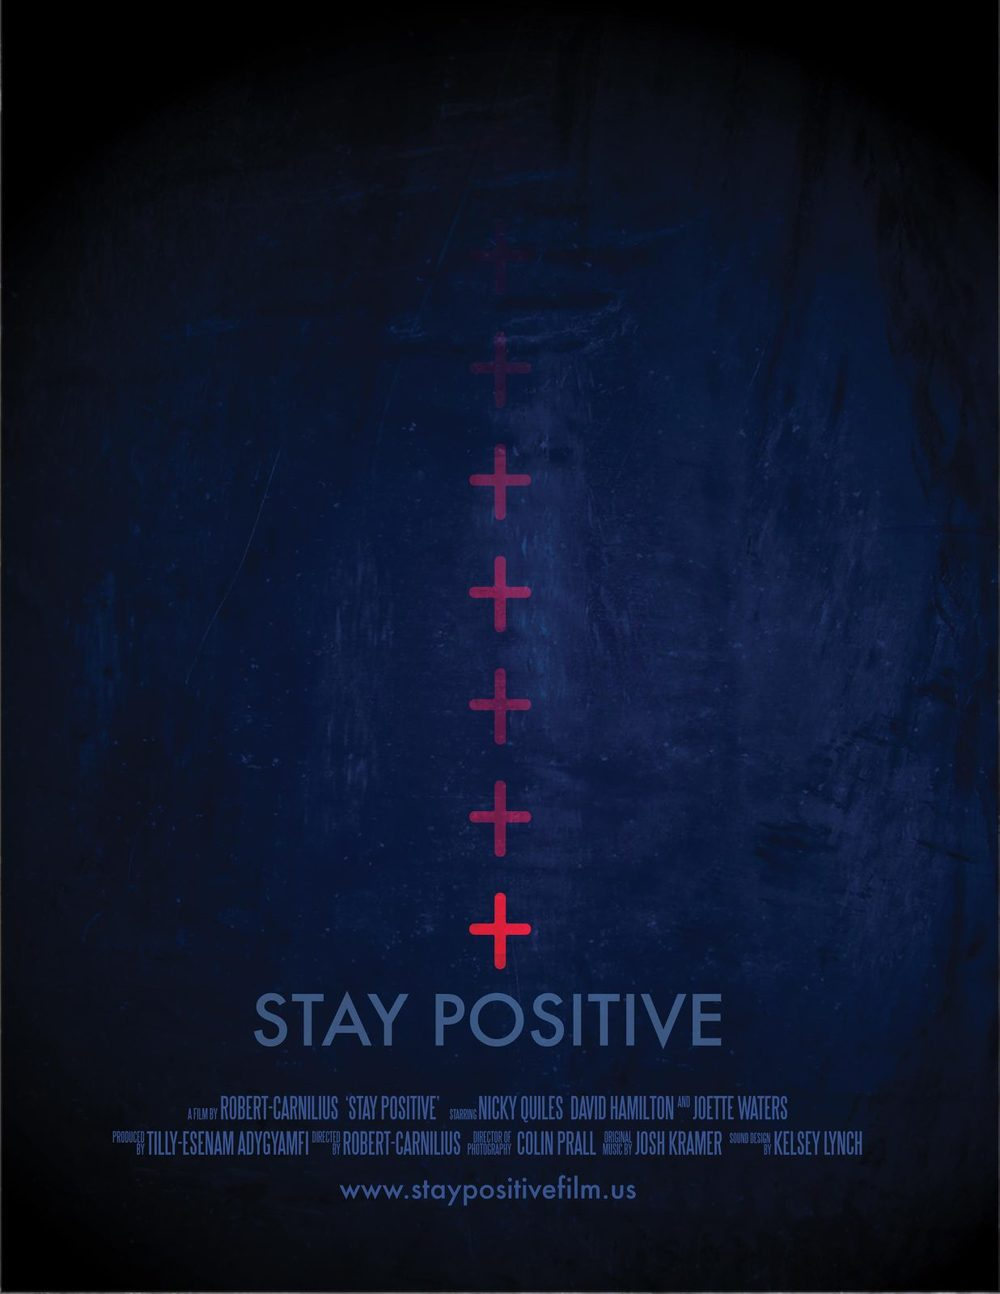 Stay Positive One Sheet.                                                              Design by  Carnilius